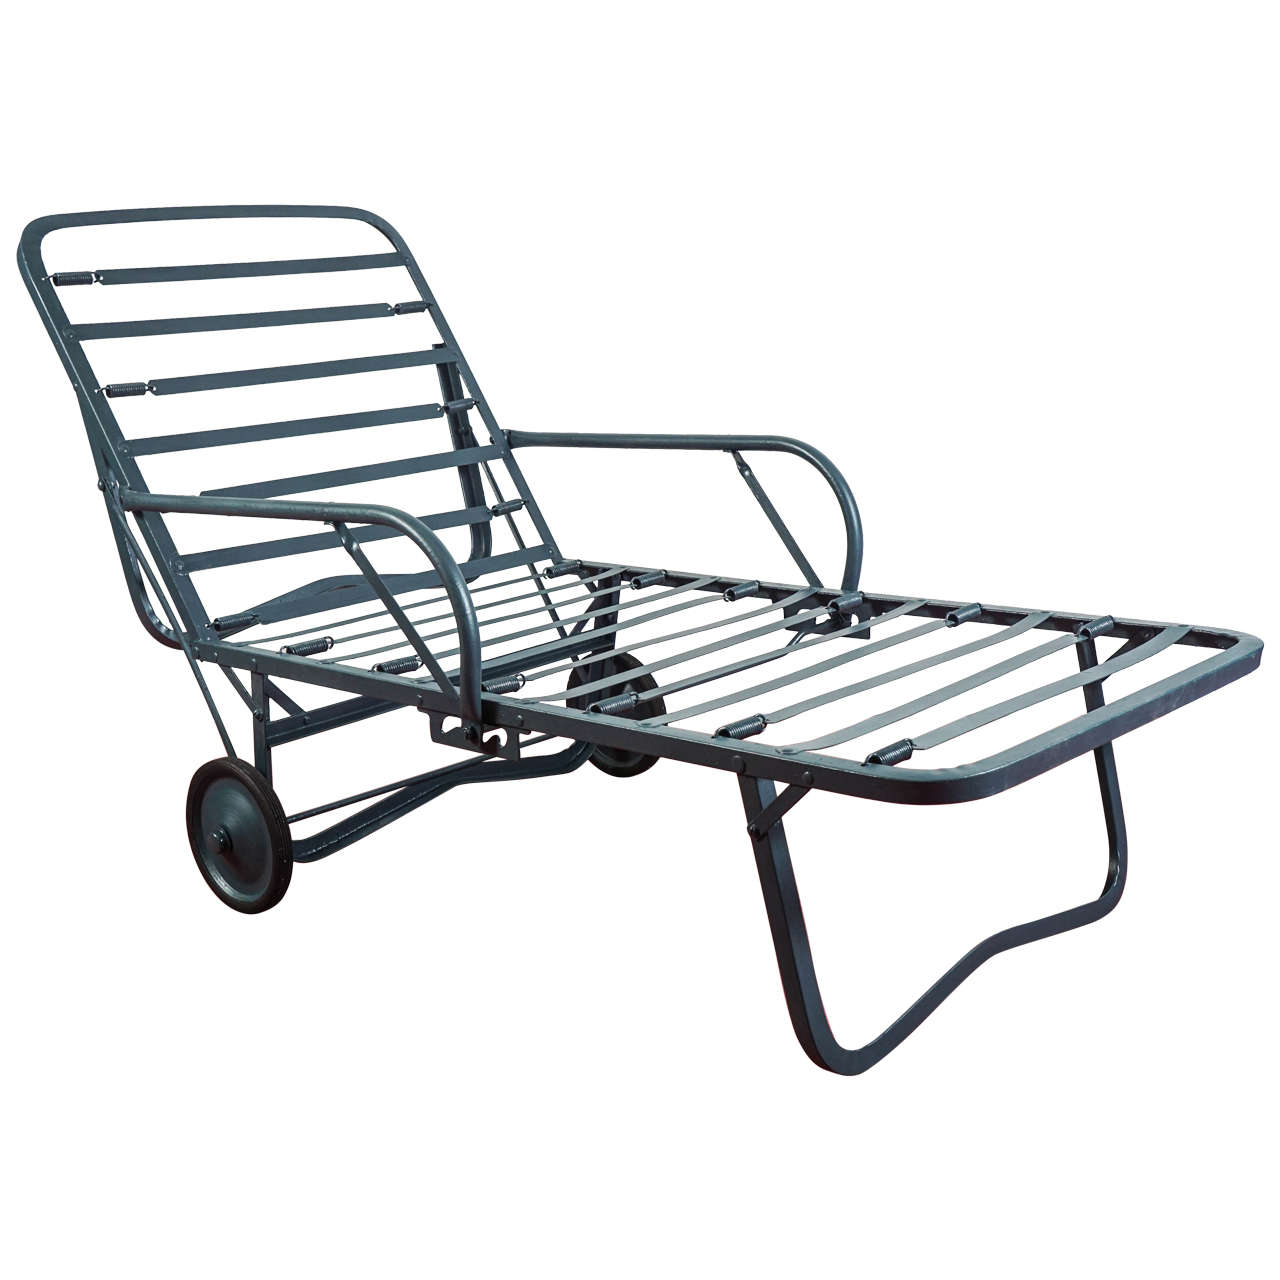 Vintage outdoor chaise longue with arms at 1stdibs for Chaise longue garden furniture